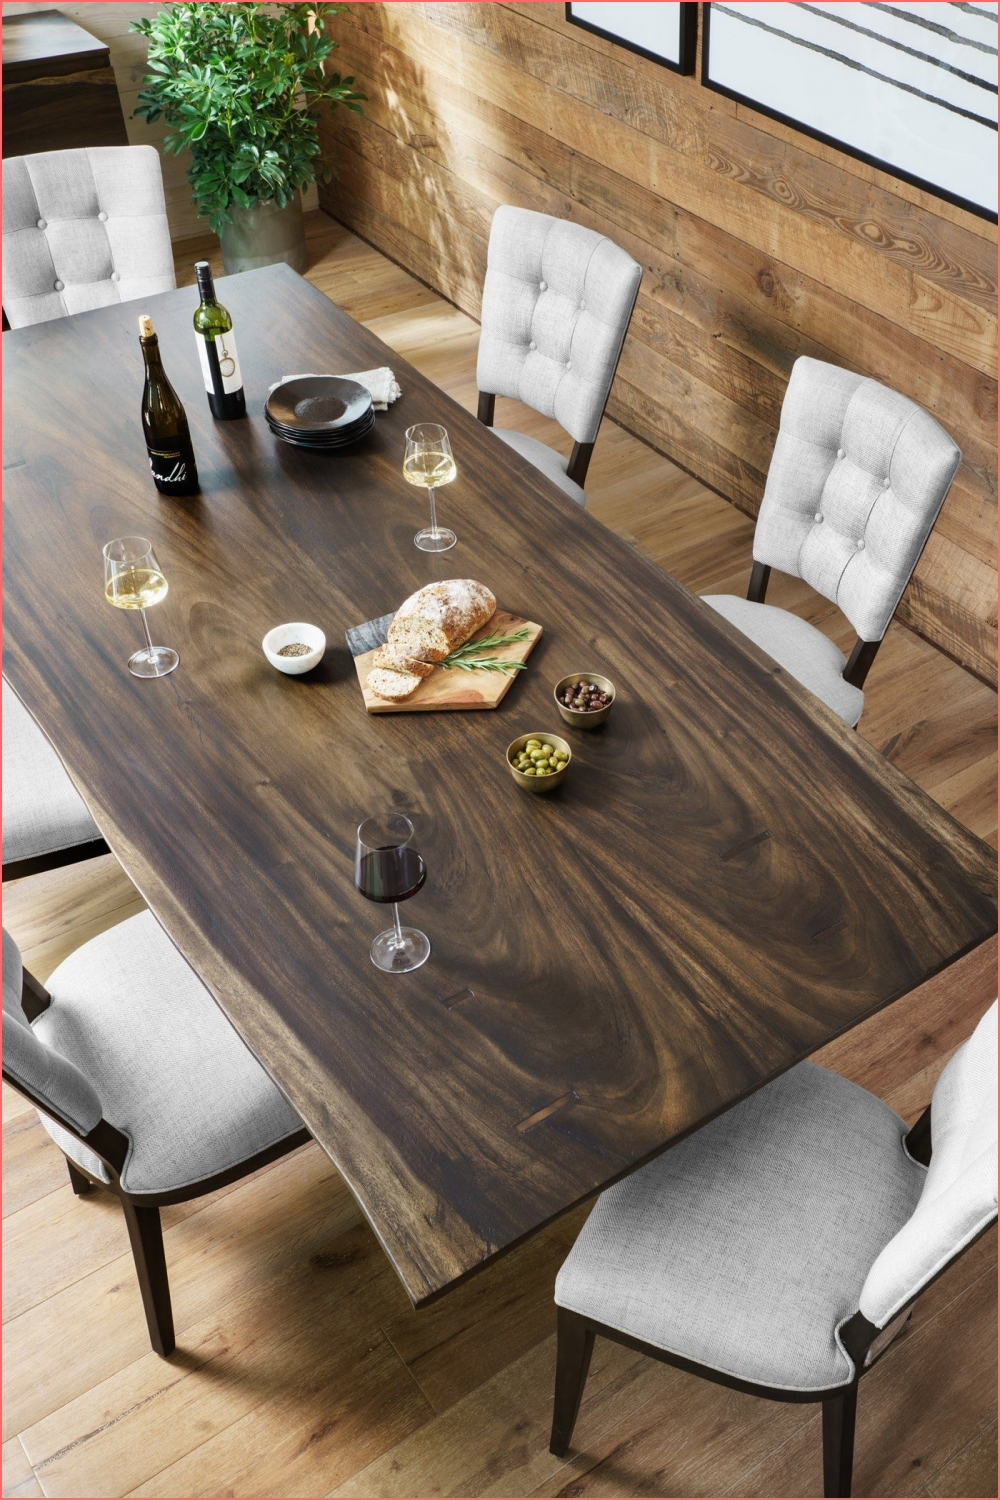 The Rocky Dining Table from Four Hands features a modern X on dining table design on dining table design post on 2020-11-24 16:29:04